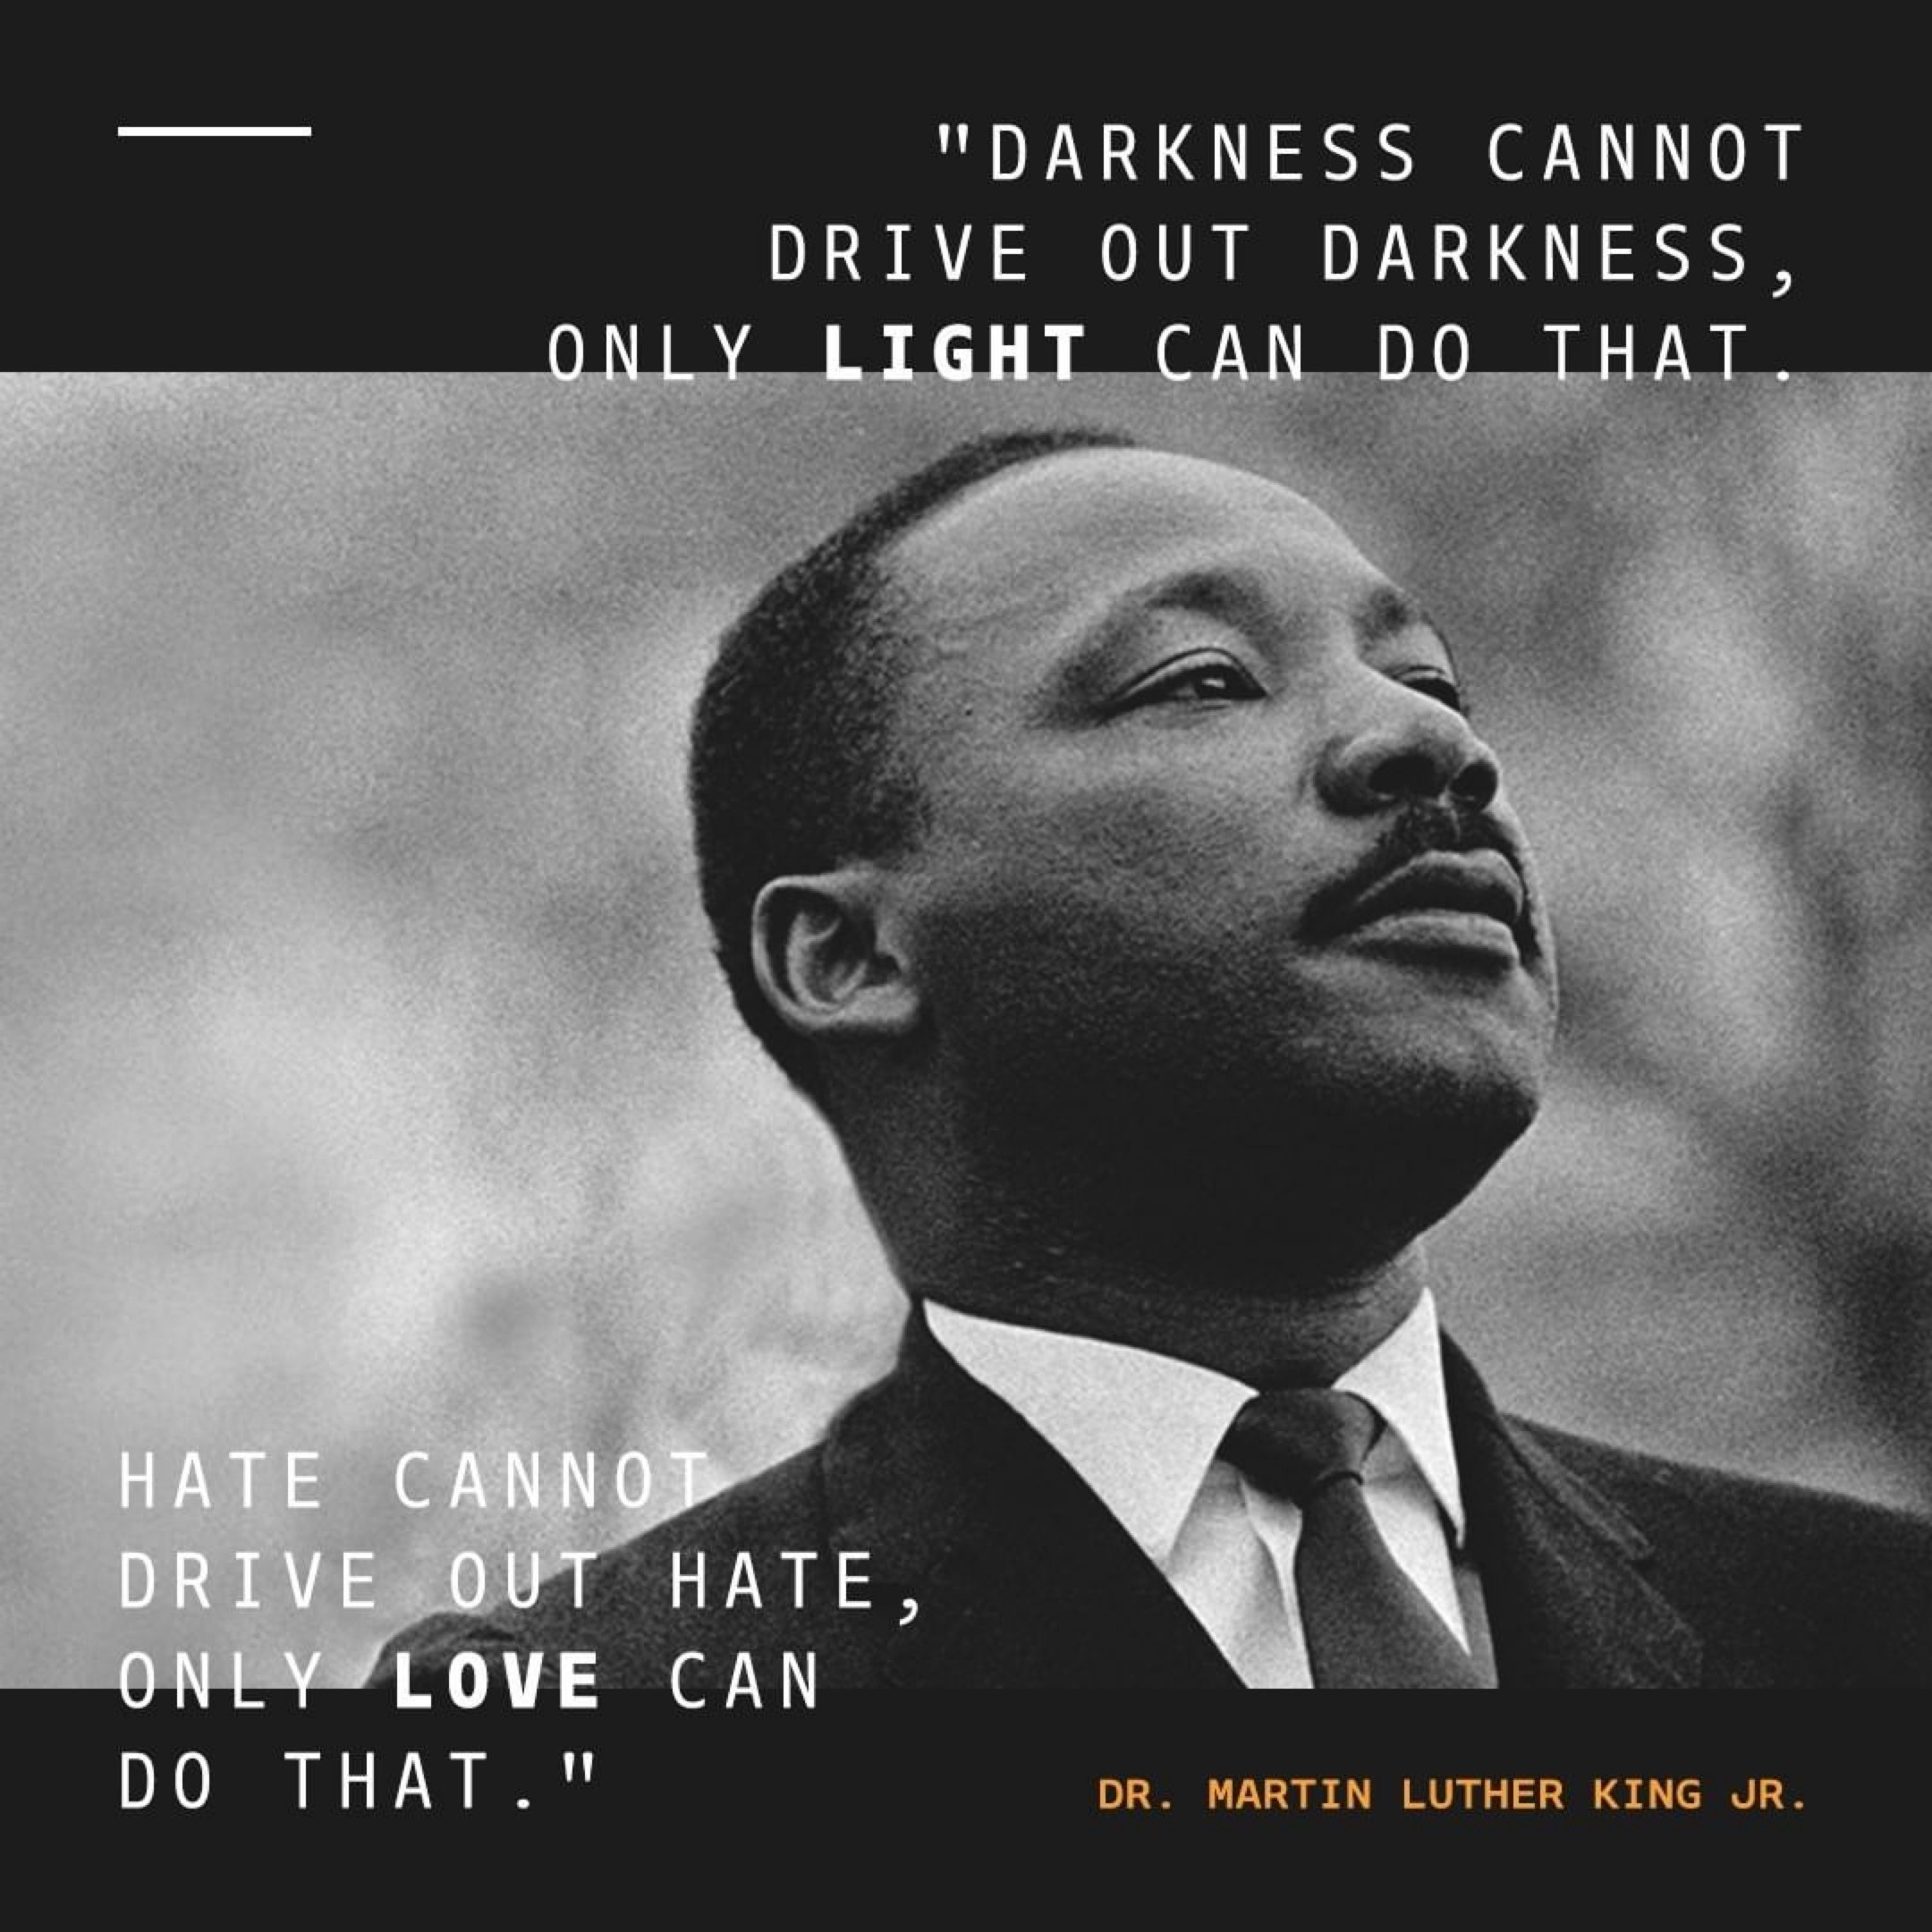 Injustice Anywhere Is A Threat To Justice Everywhere Martin Luther King Jr S Most Famous Quotations Mlkd Martin Luther King Jr King Jr Martin Luther King